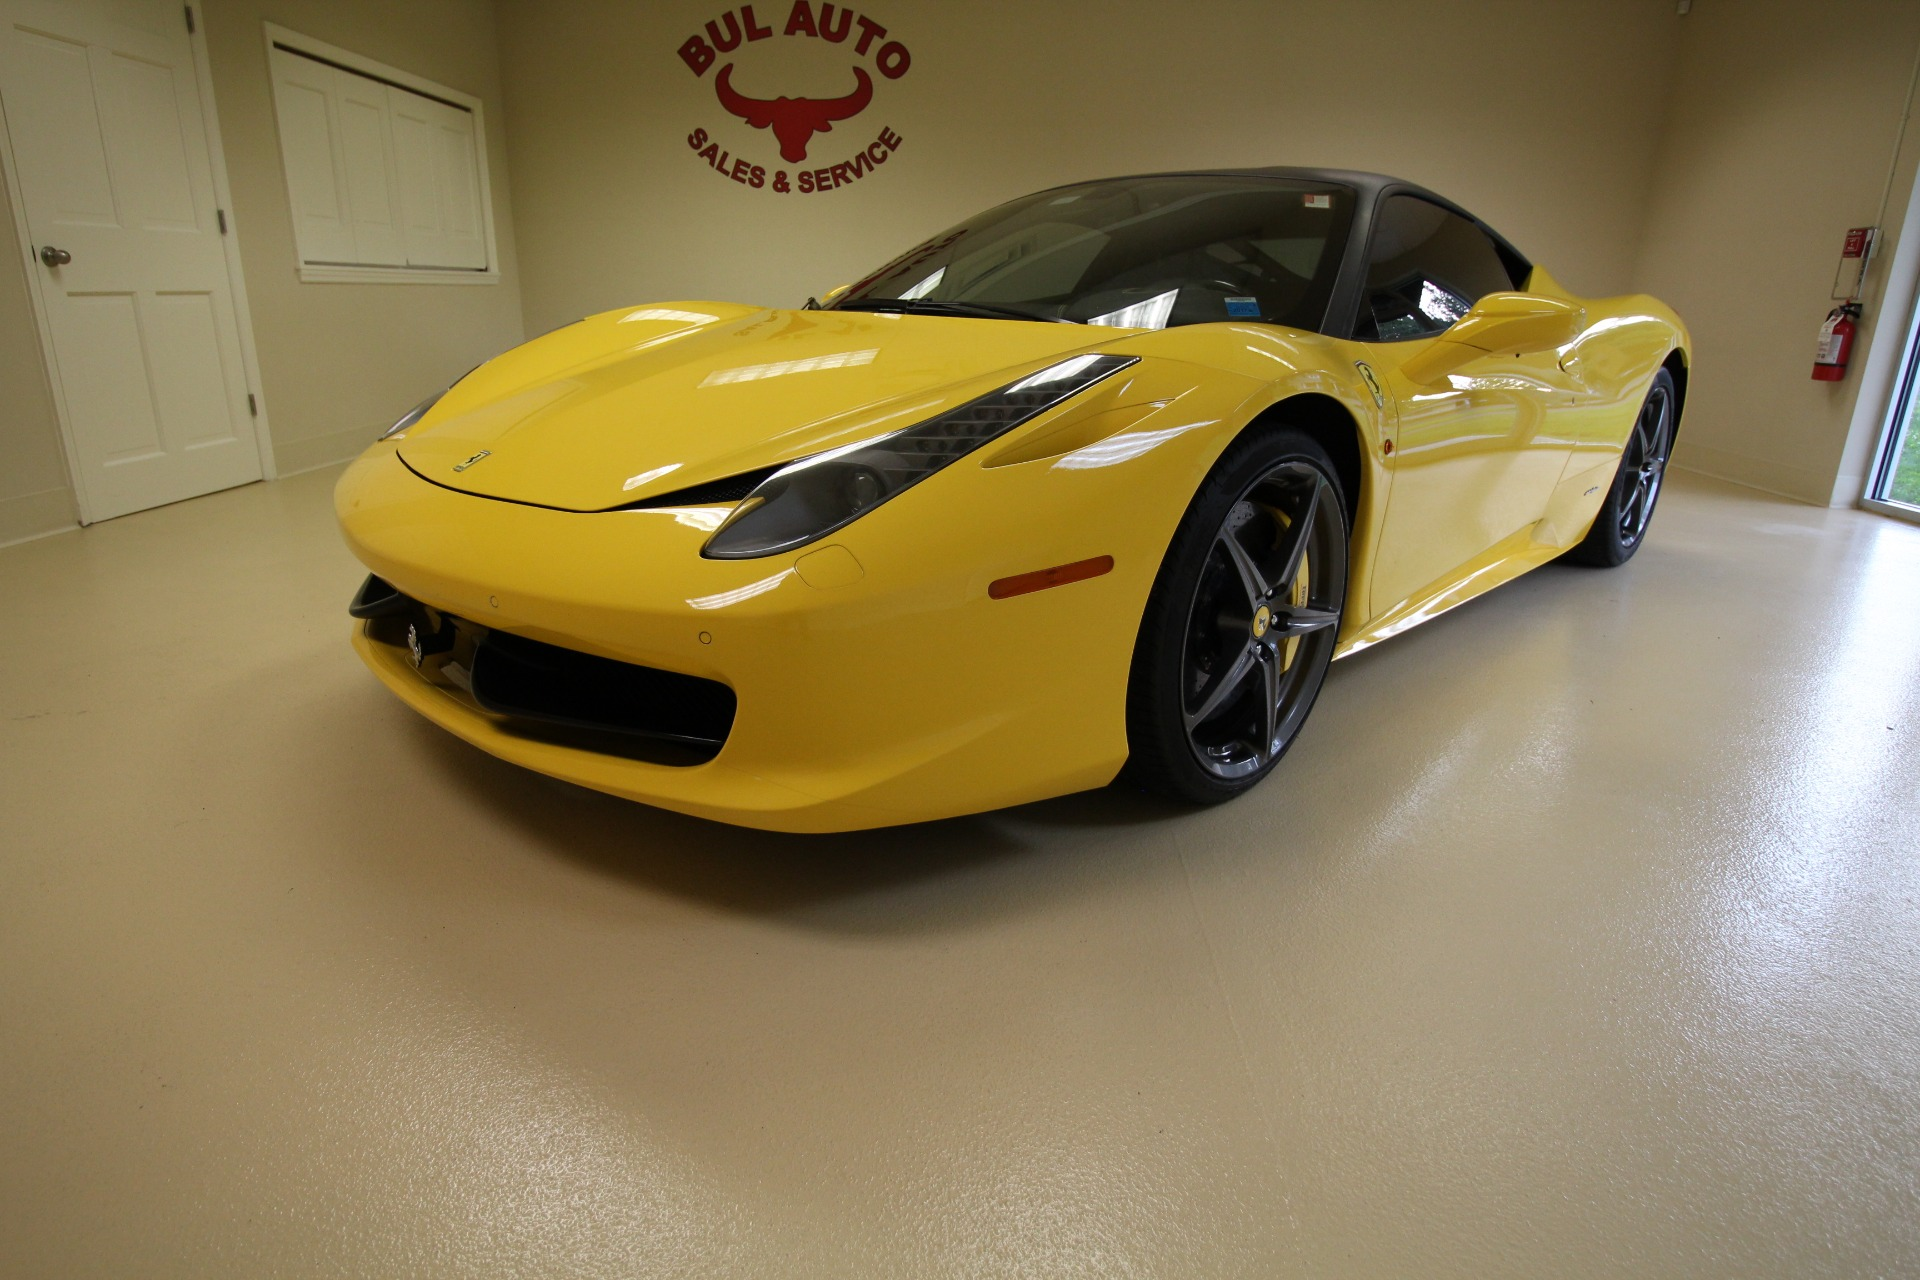 2011 ferrari 458 italia seriously loaded car msrp was 302000